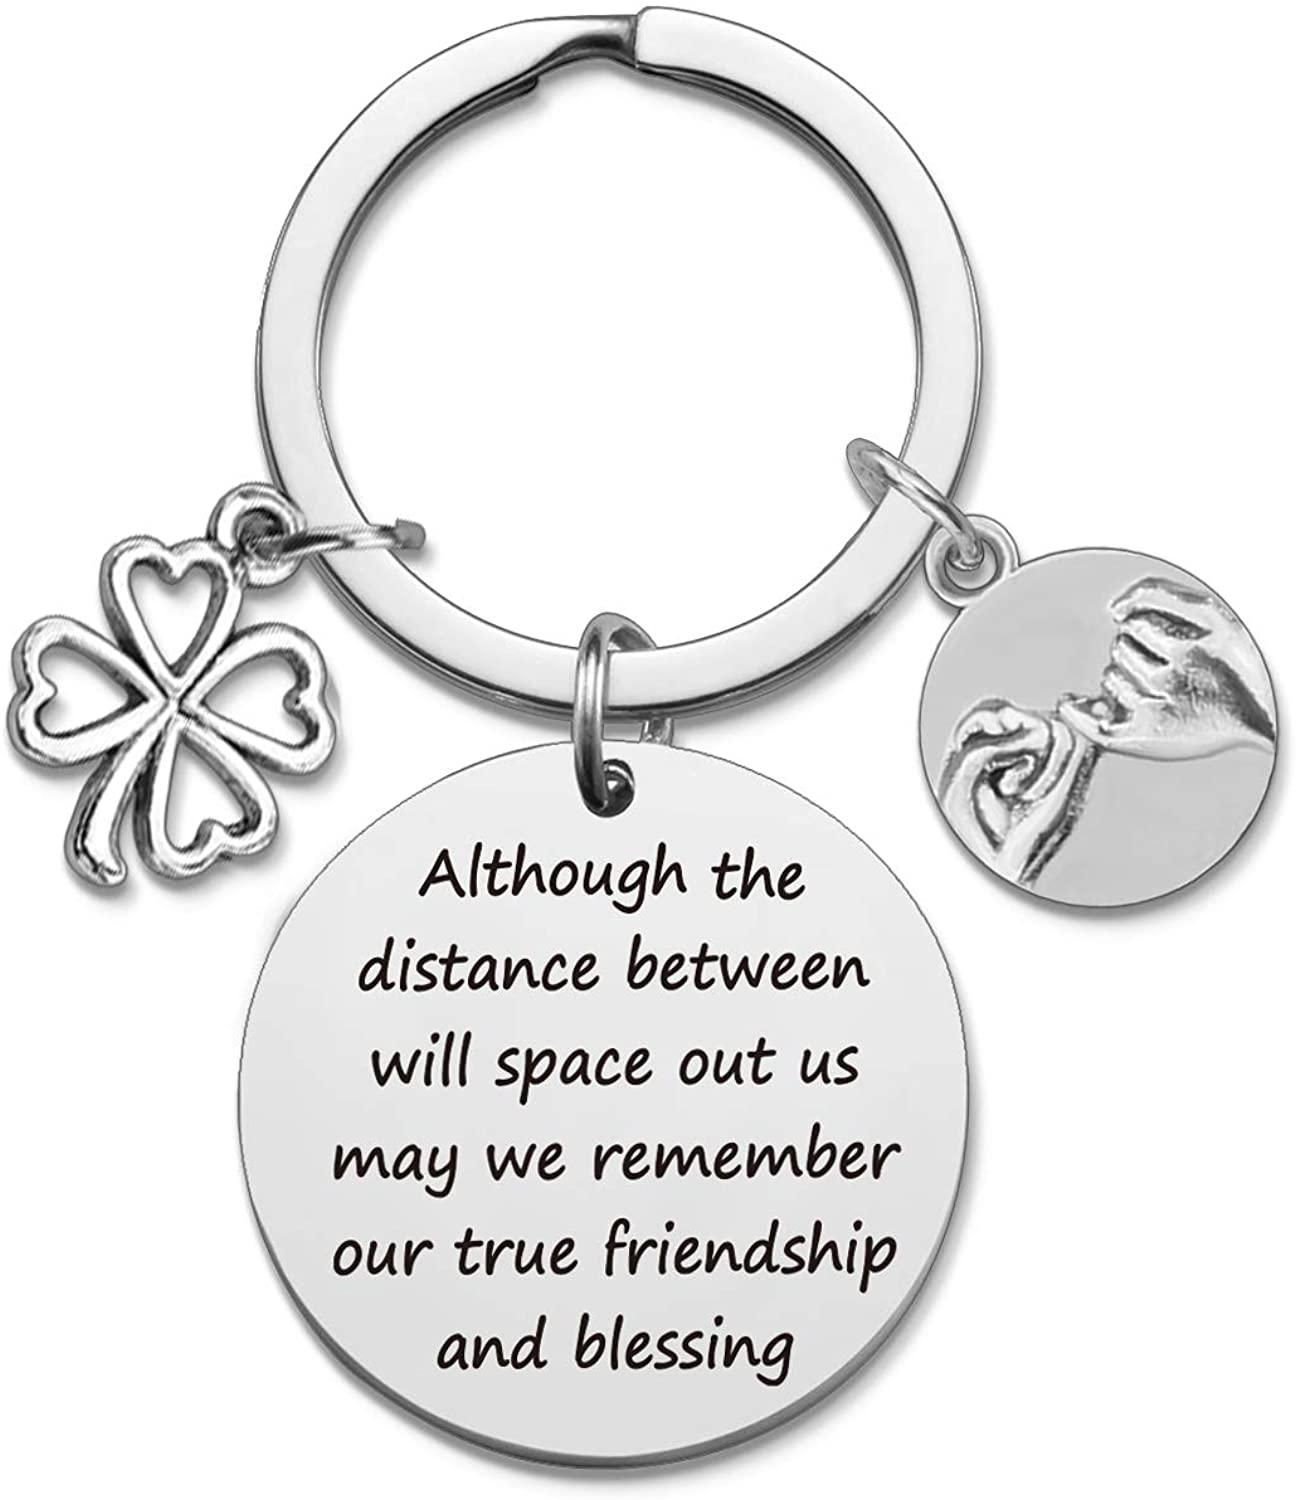 HN HNHB Friendship Keychain Although The Distance Between Will Space Out us May we Remember Our True Friendship and Best Friend Blessing Birthday Parting Gift Commemorative